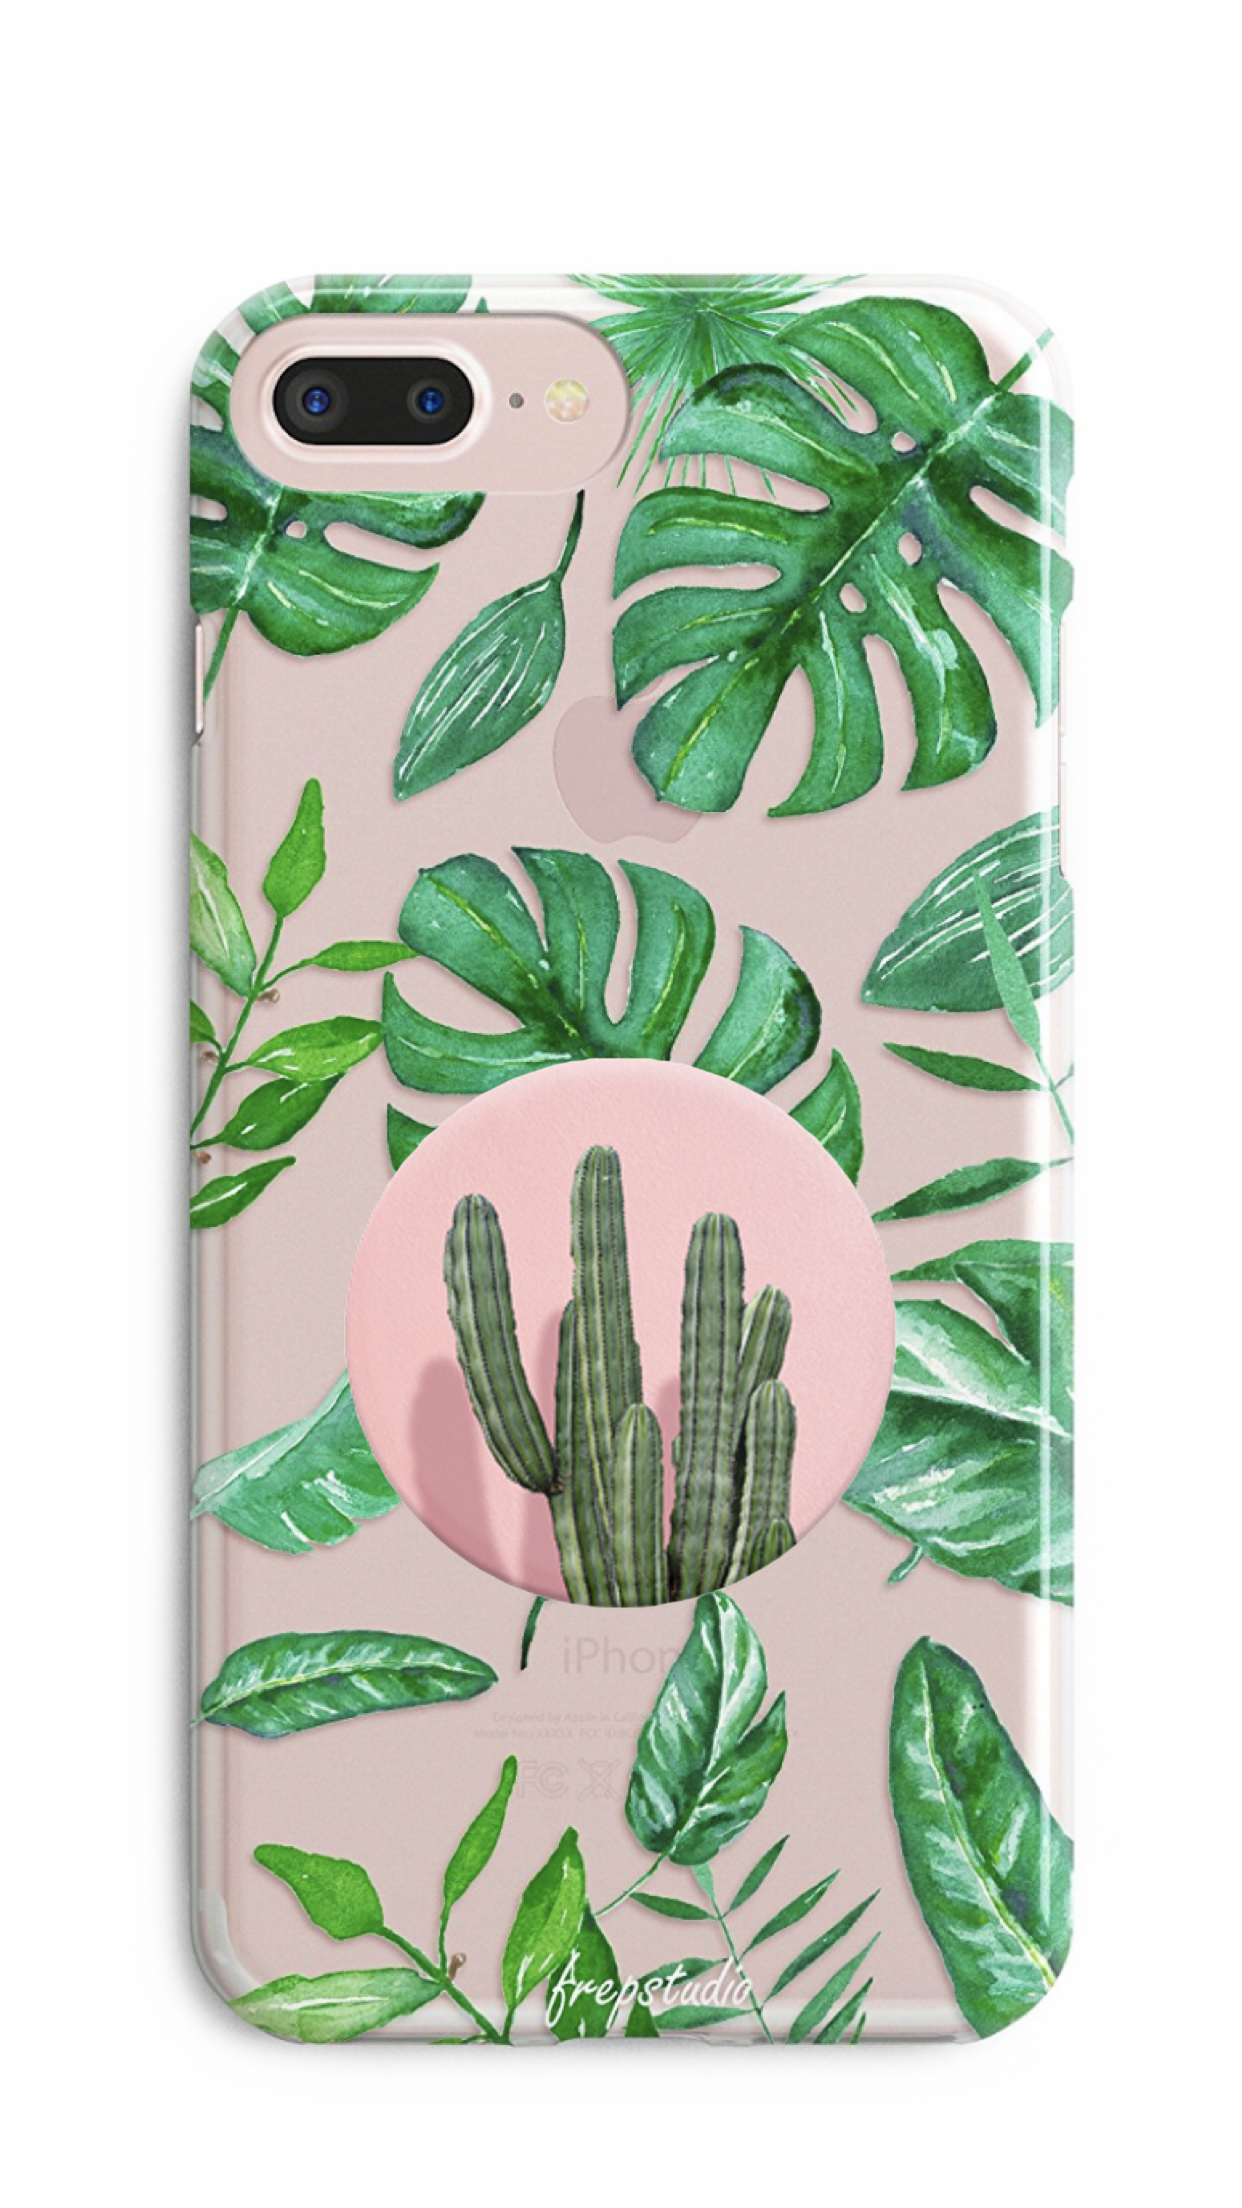 b8a54176b10 Phone case+cactus pop socket Phone case  Amazon Popsocket  Popsocket ...